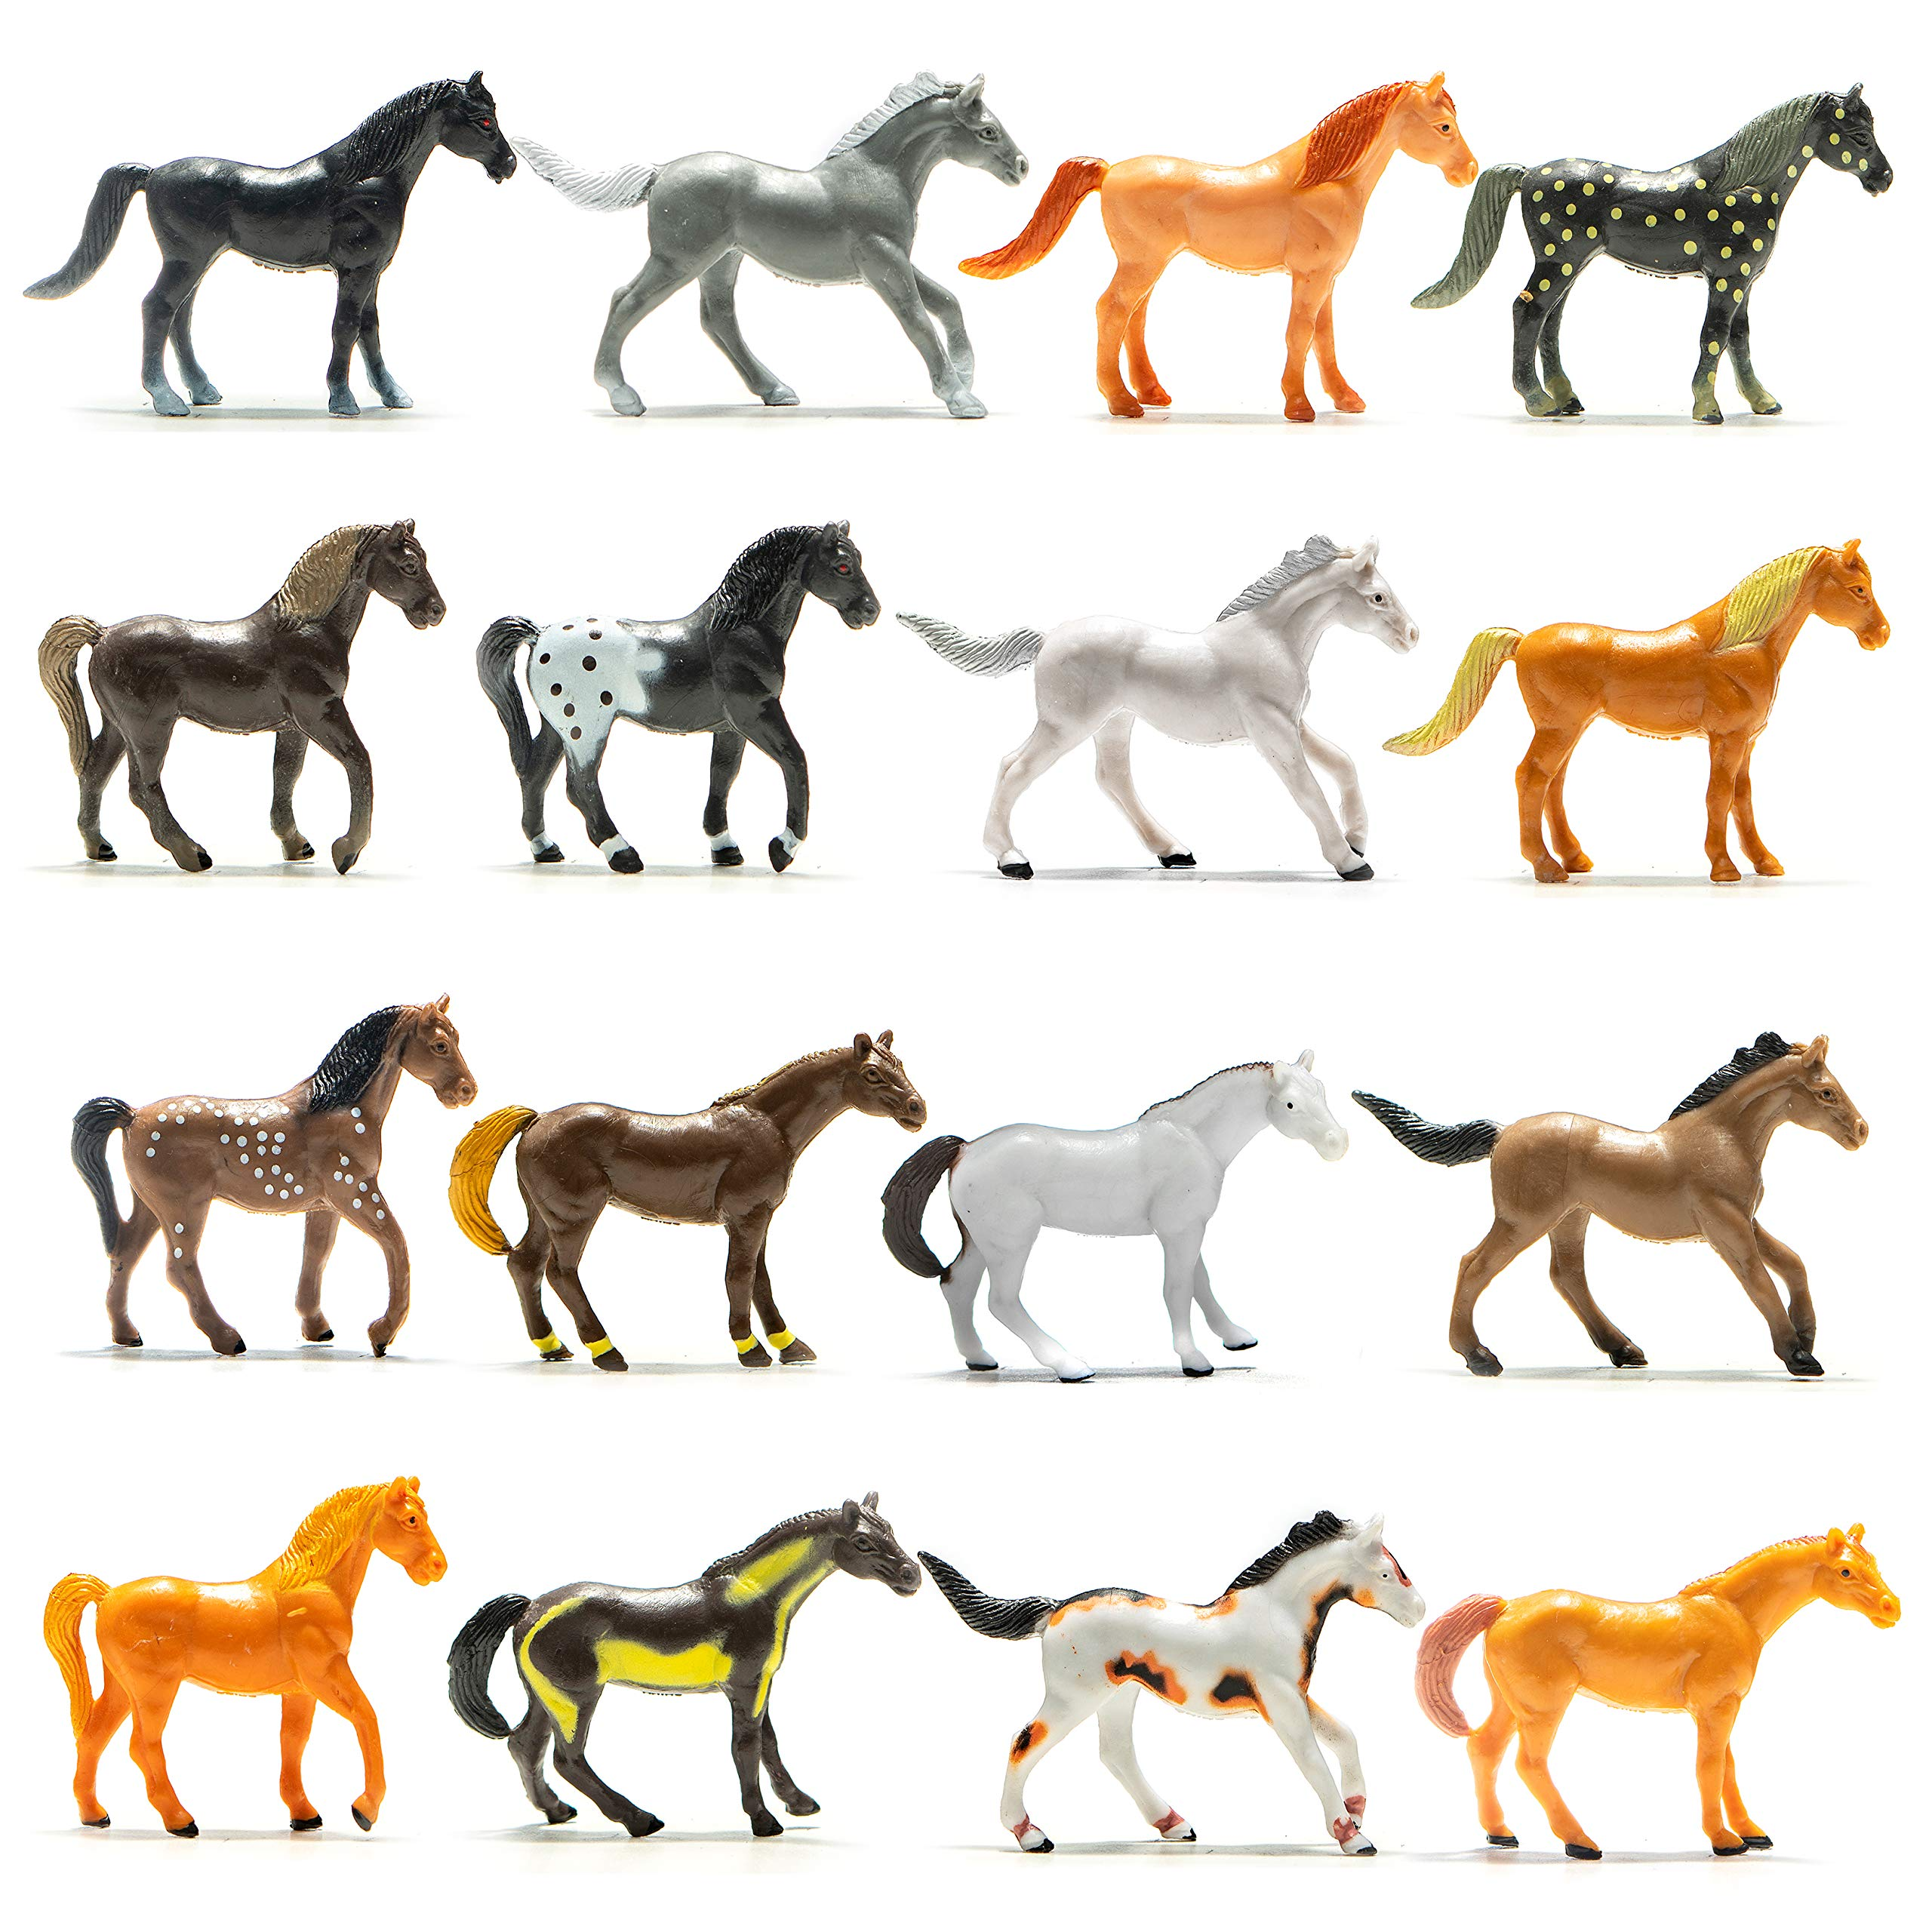 Prextex Plastic Horses Party Favors, 9 Count (All Different Horses in  Various Poses and Colors) Best Toy Gift for Boys